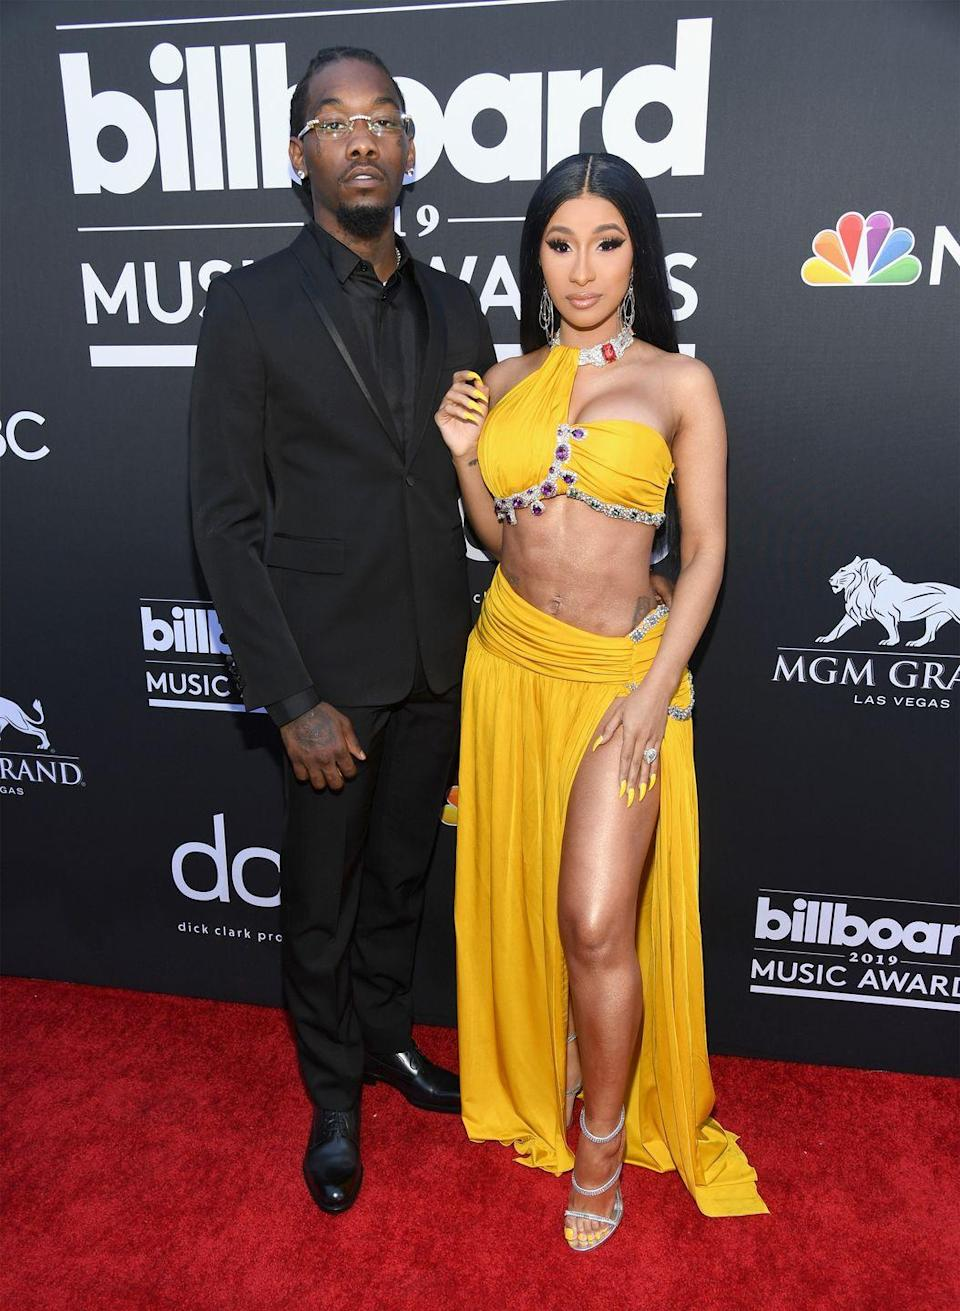 <p>Cardi B and Offset are becoming one of the most powerful couples in the music world. The rappers haven't always had the smoothest relationship—Cardi broke up with him after he allegedly cheated on her—but the two found a way to make it work. They married in 2017 and have a daughter together named Kulture. </p>